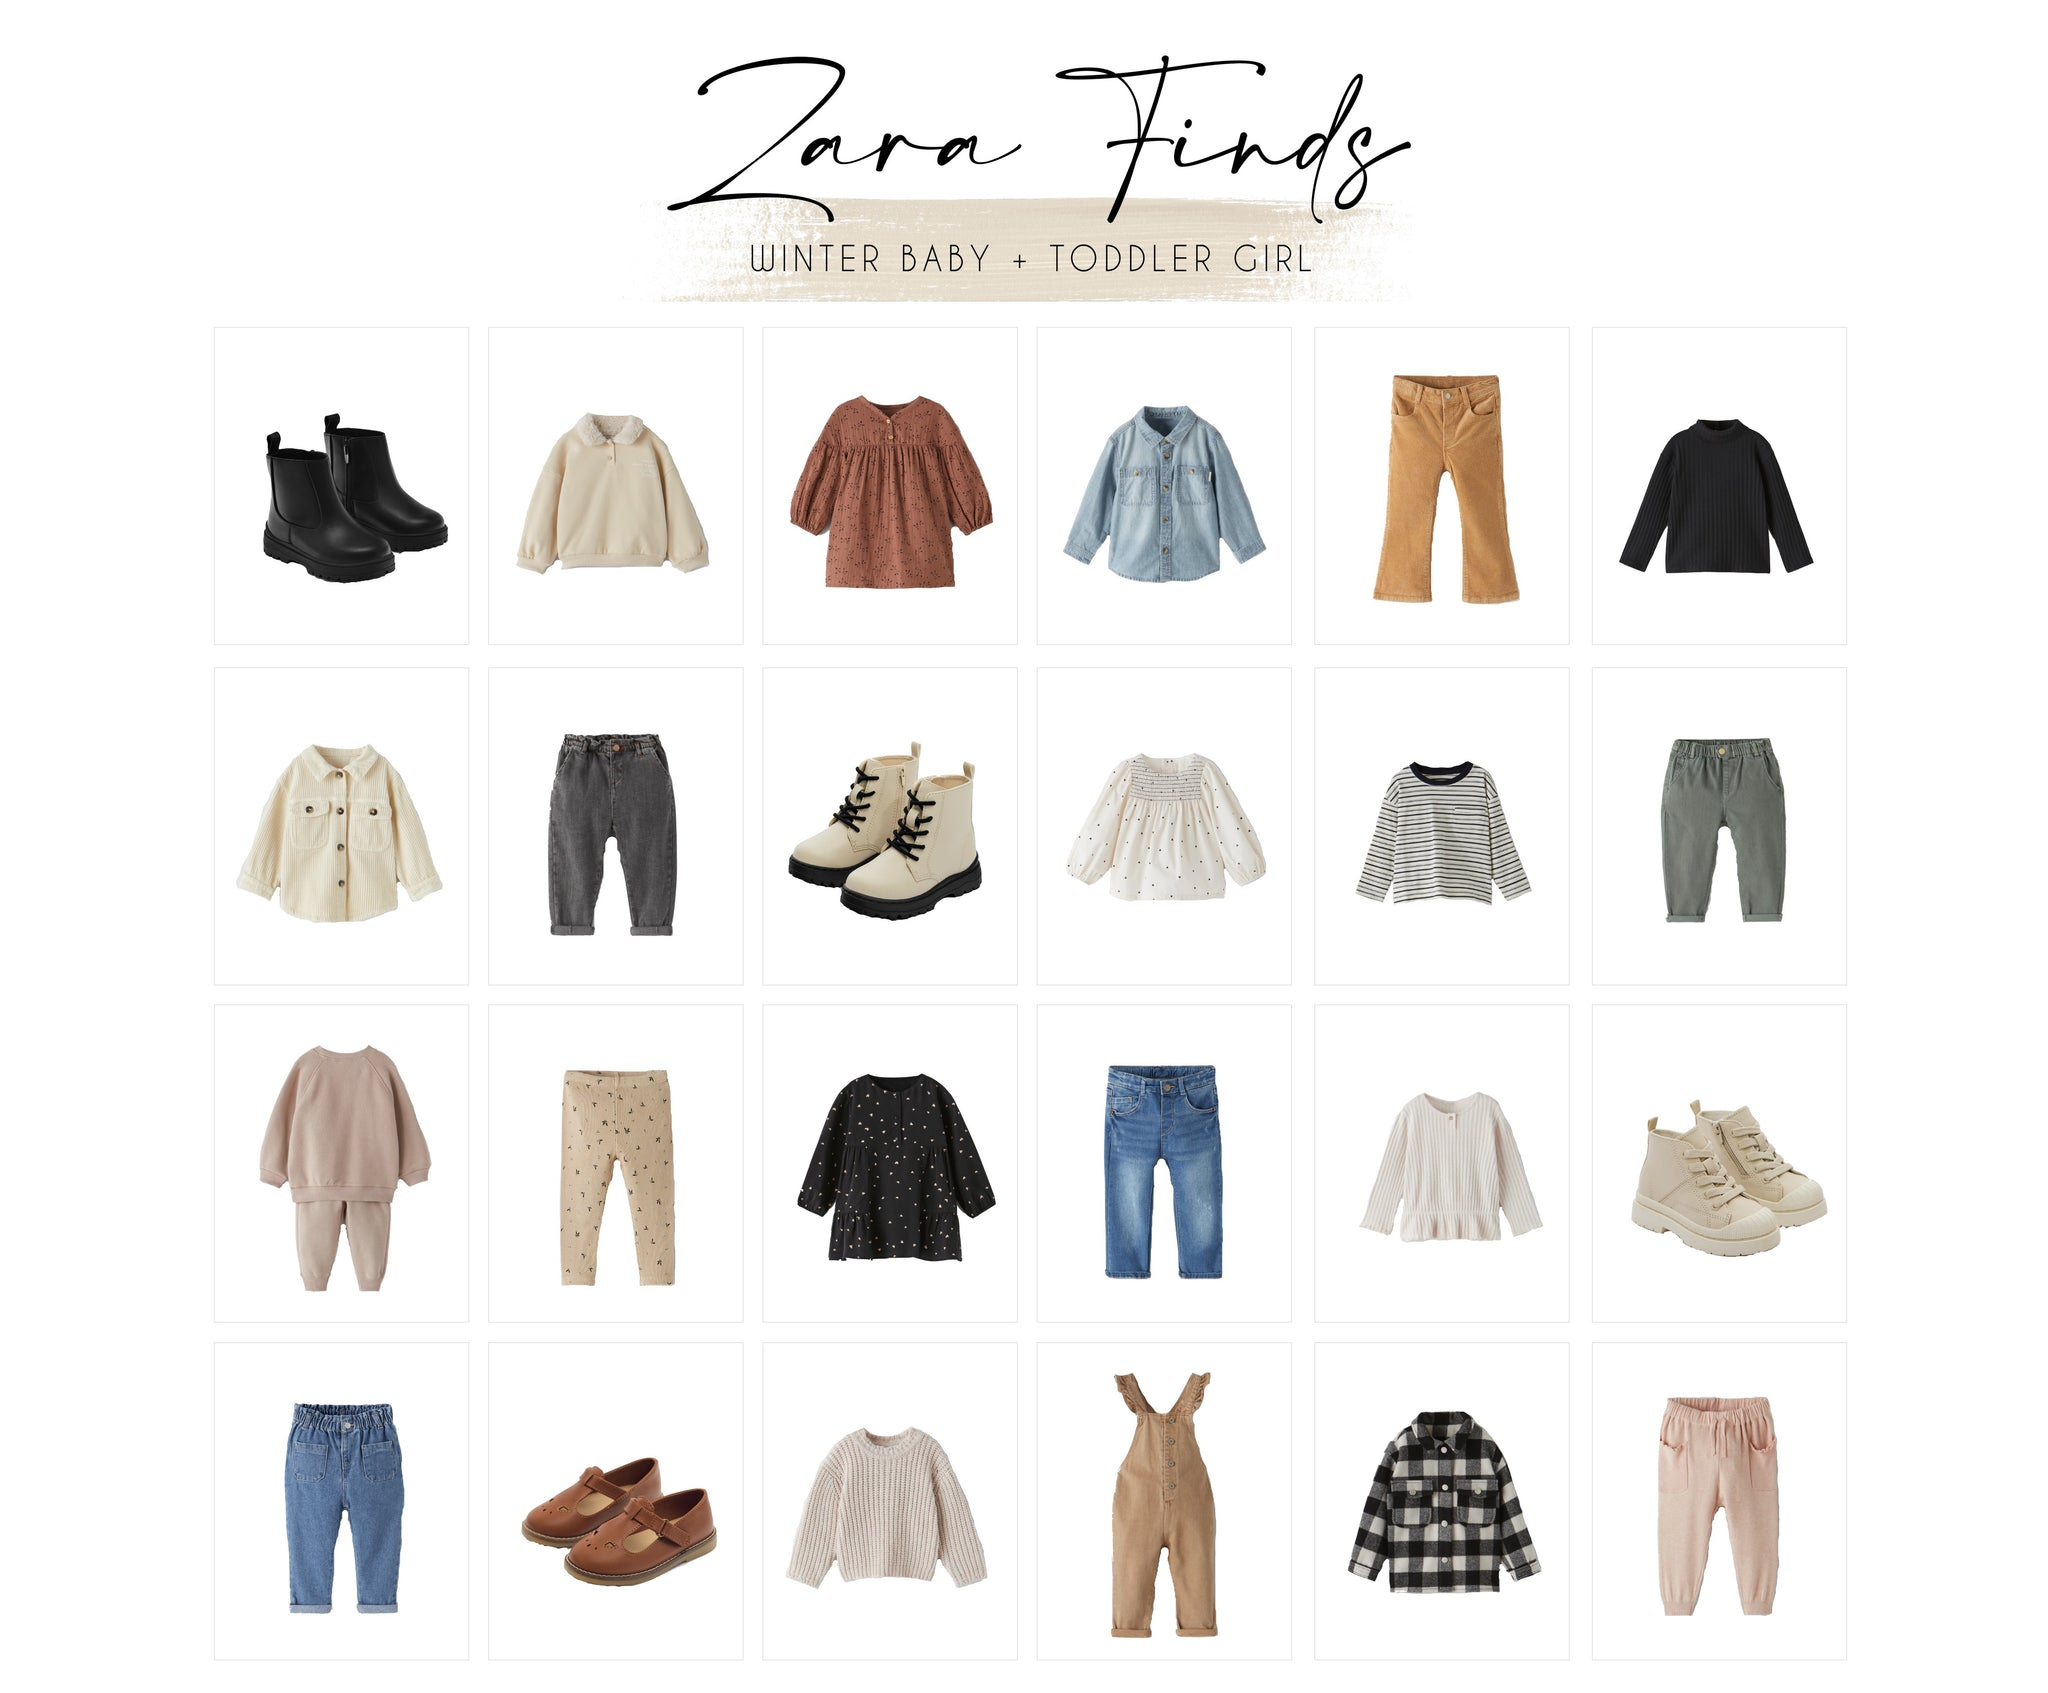 Zara Finds: Winter Baby and Toddler Girl